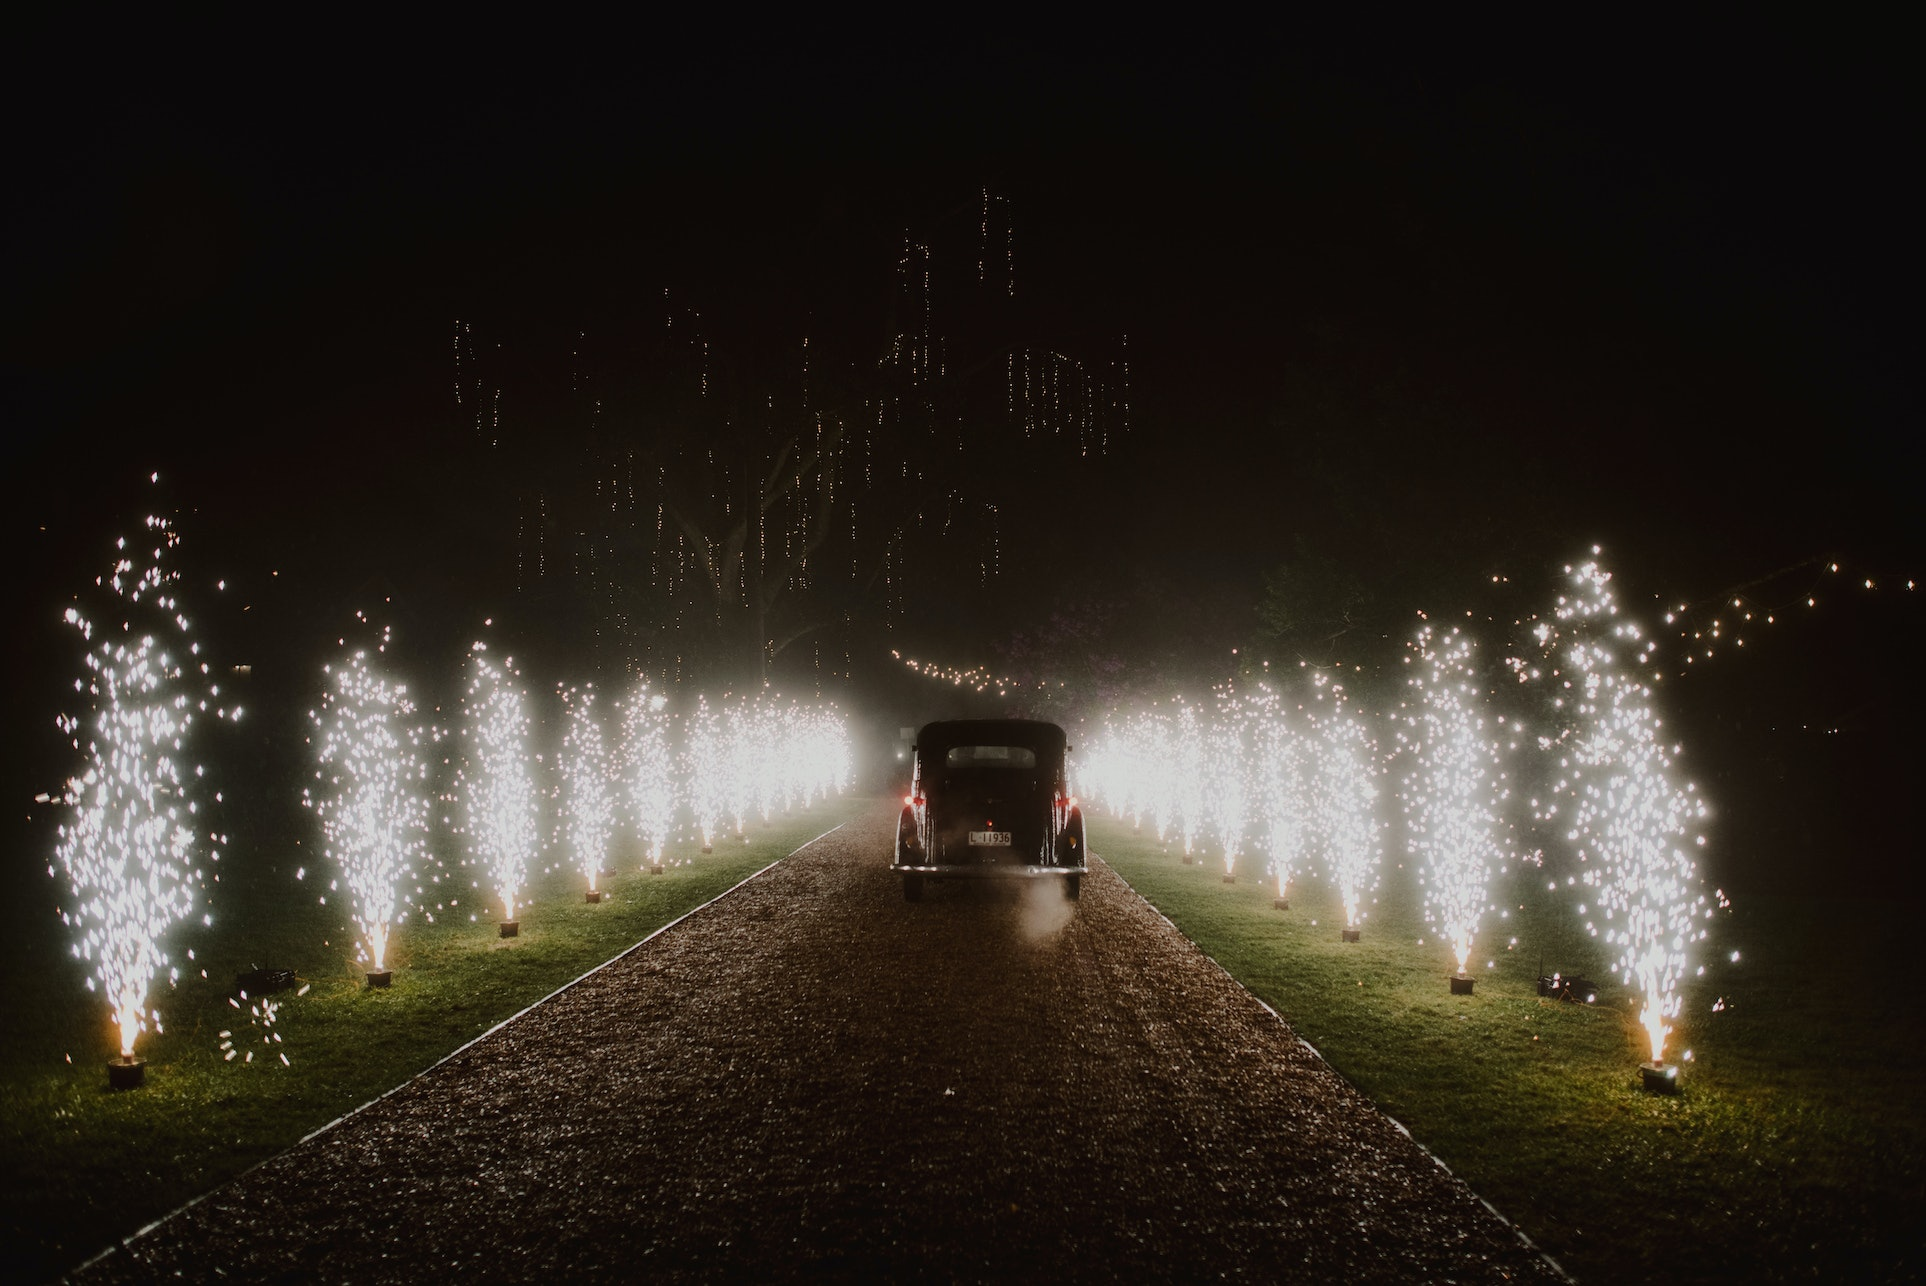 Wedding car surrounded by fireworks